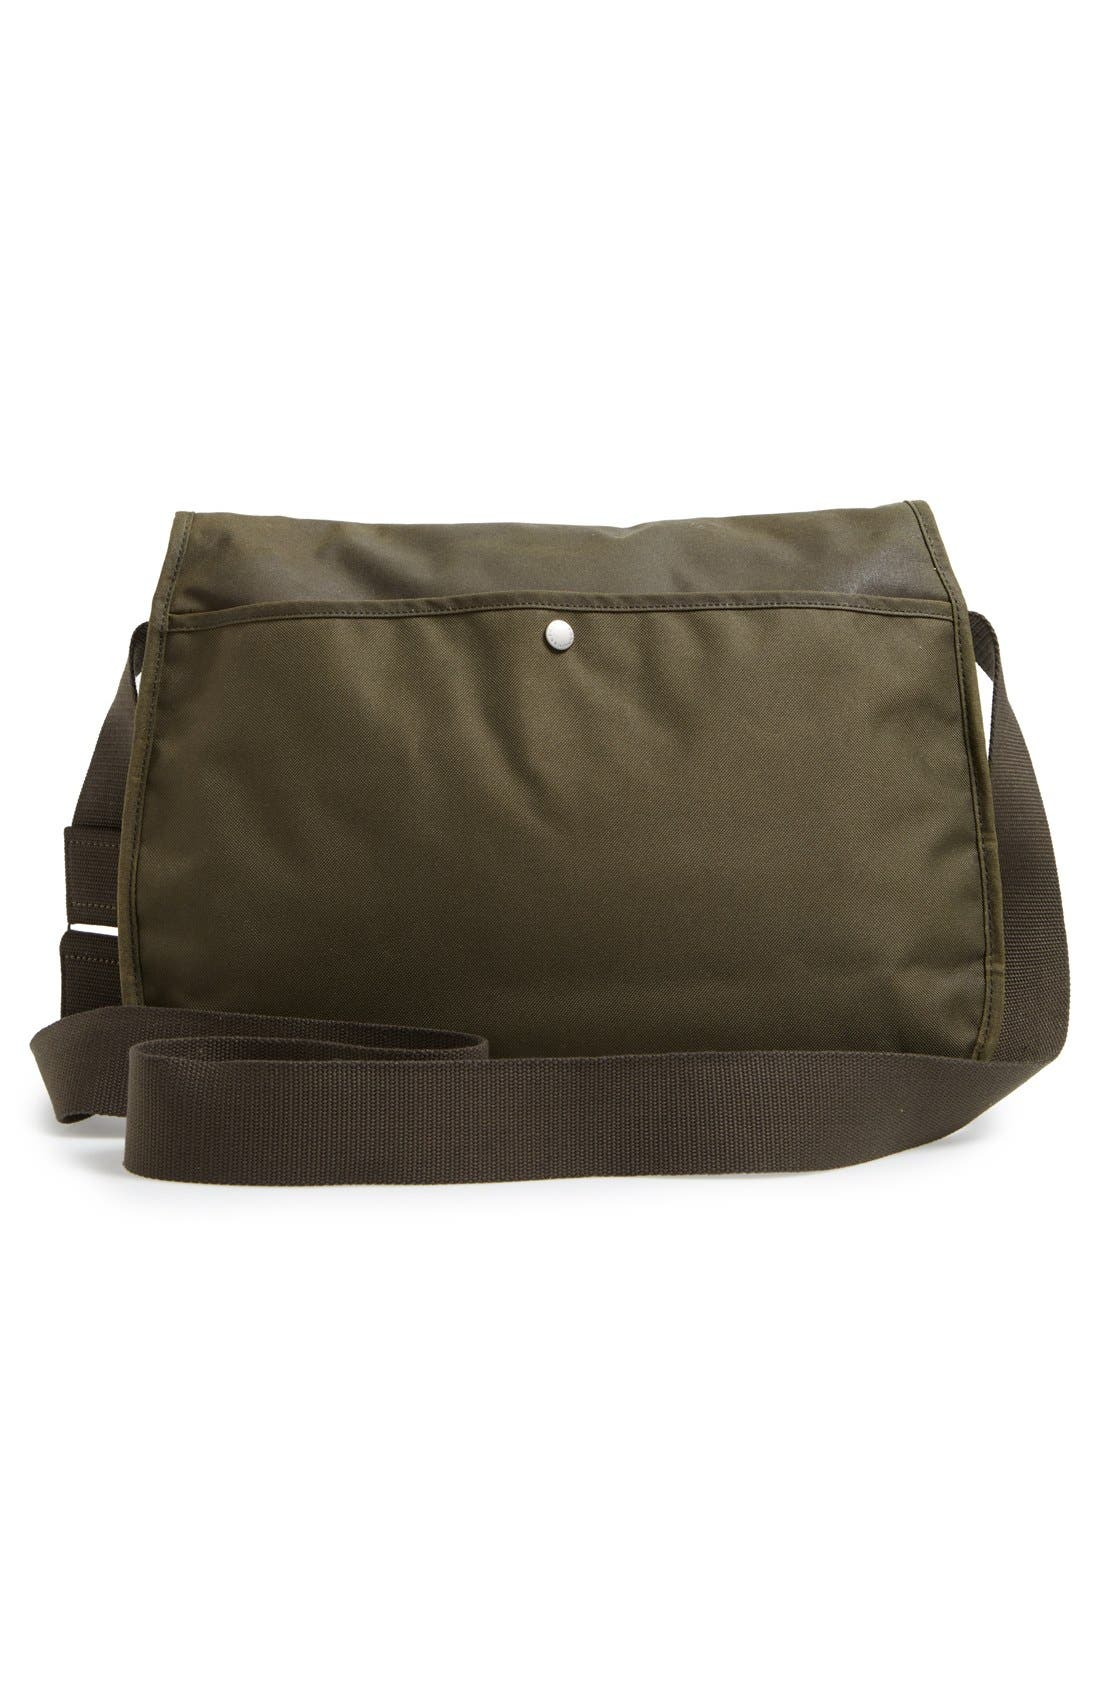 BARBOUR,                             Waxed Canvas Messenger Bag,                             Alternate thumbnail 6, color,                             340